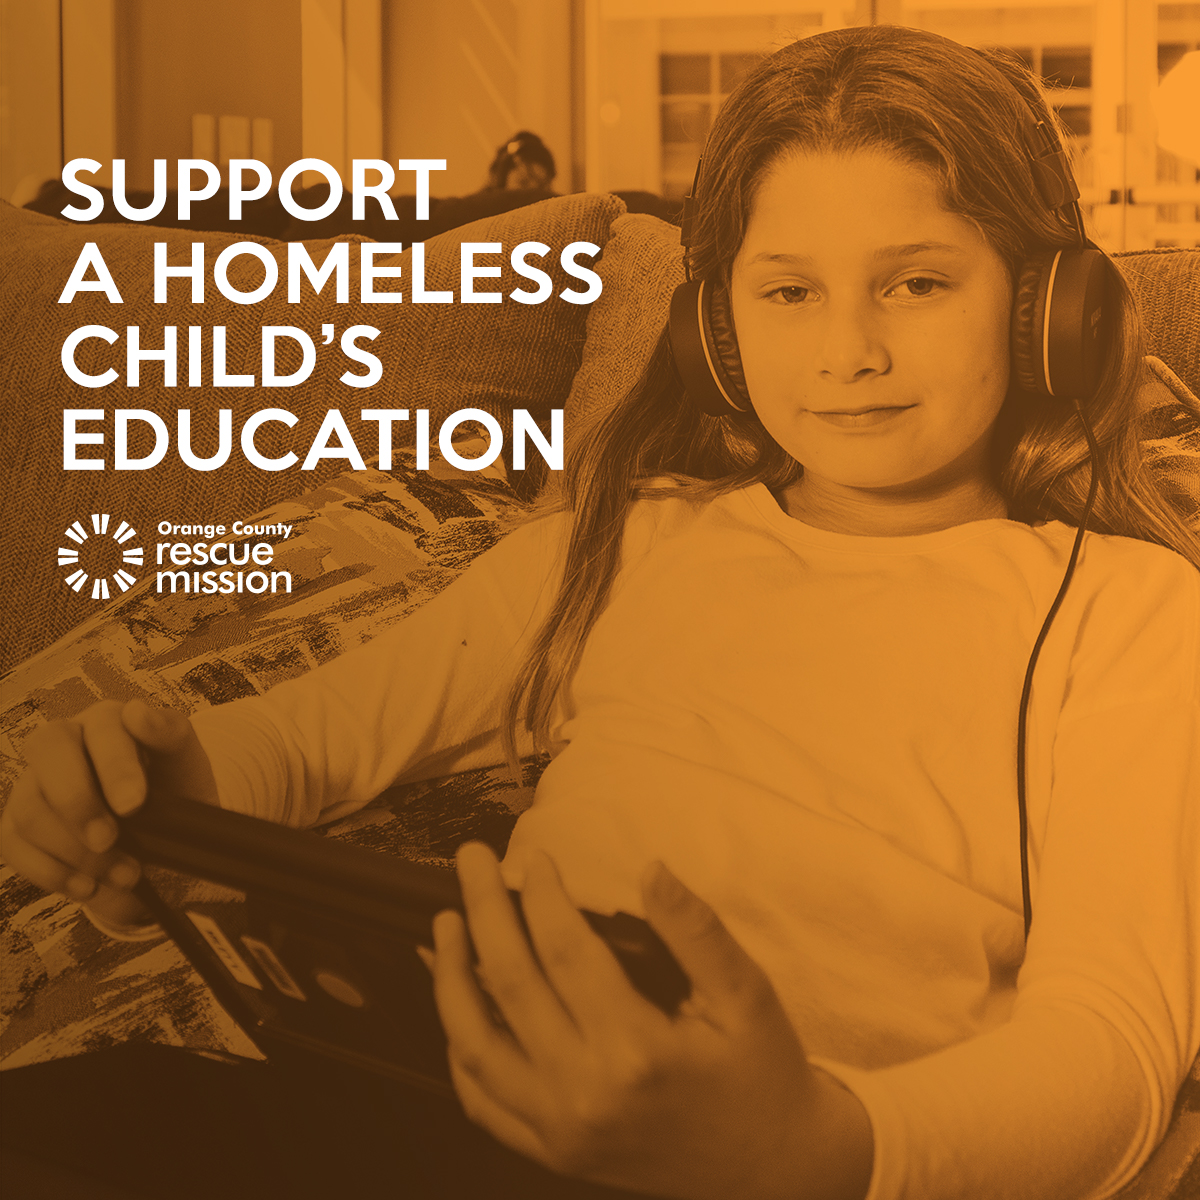 support homeless child education banner rescue mission